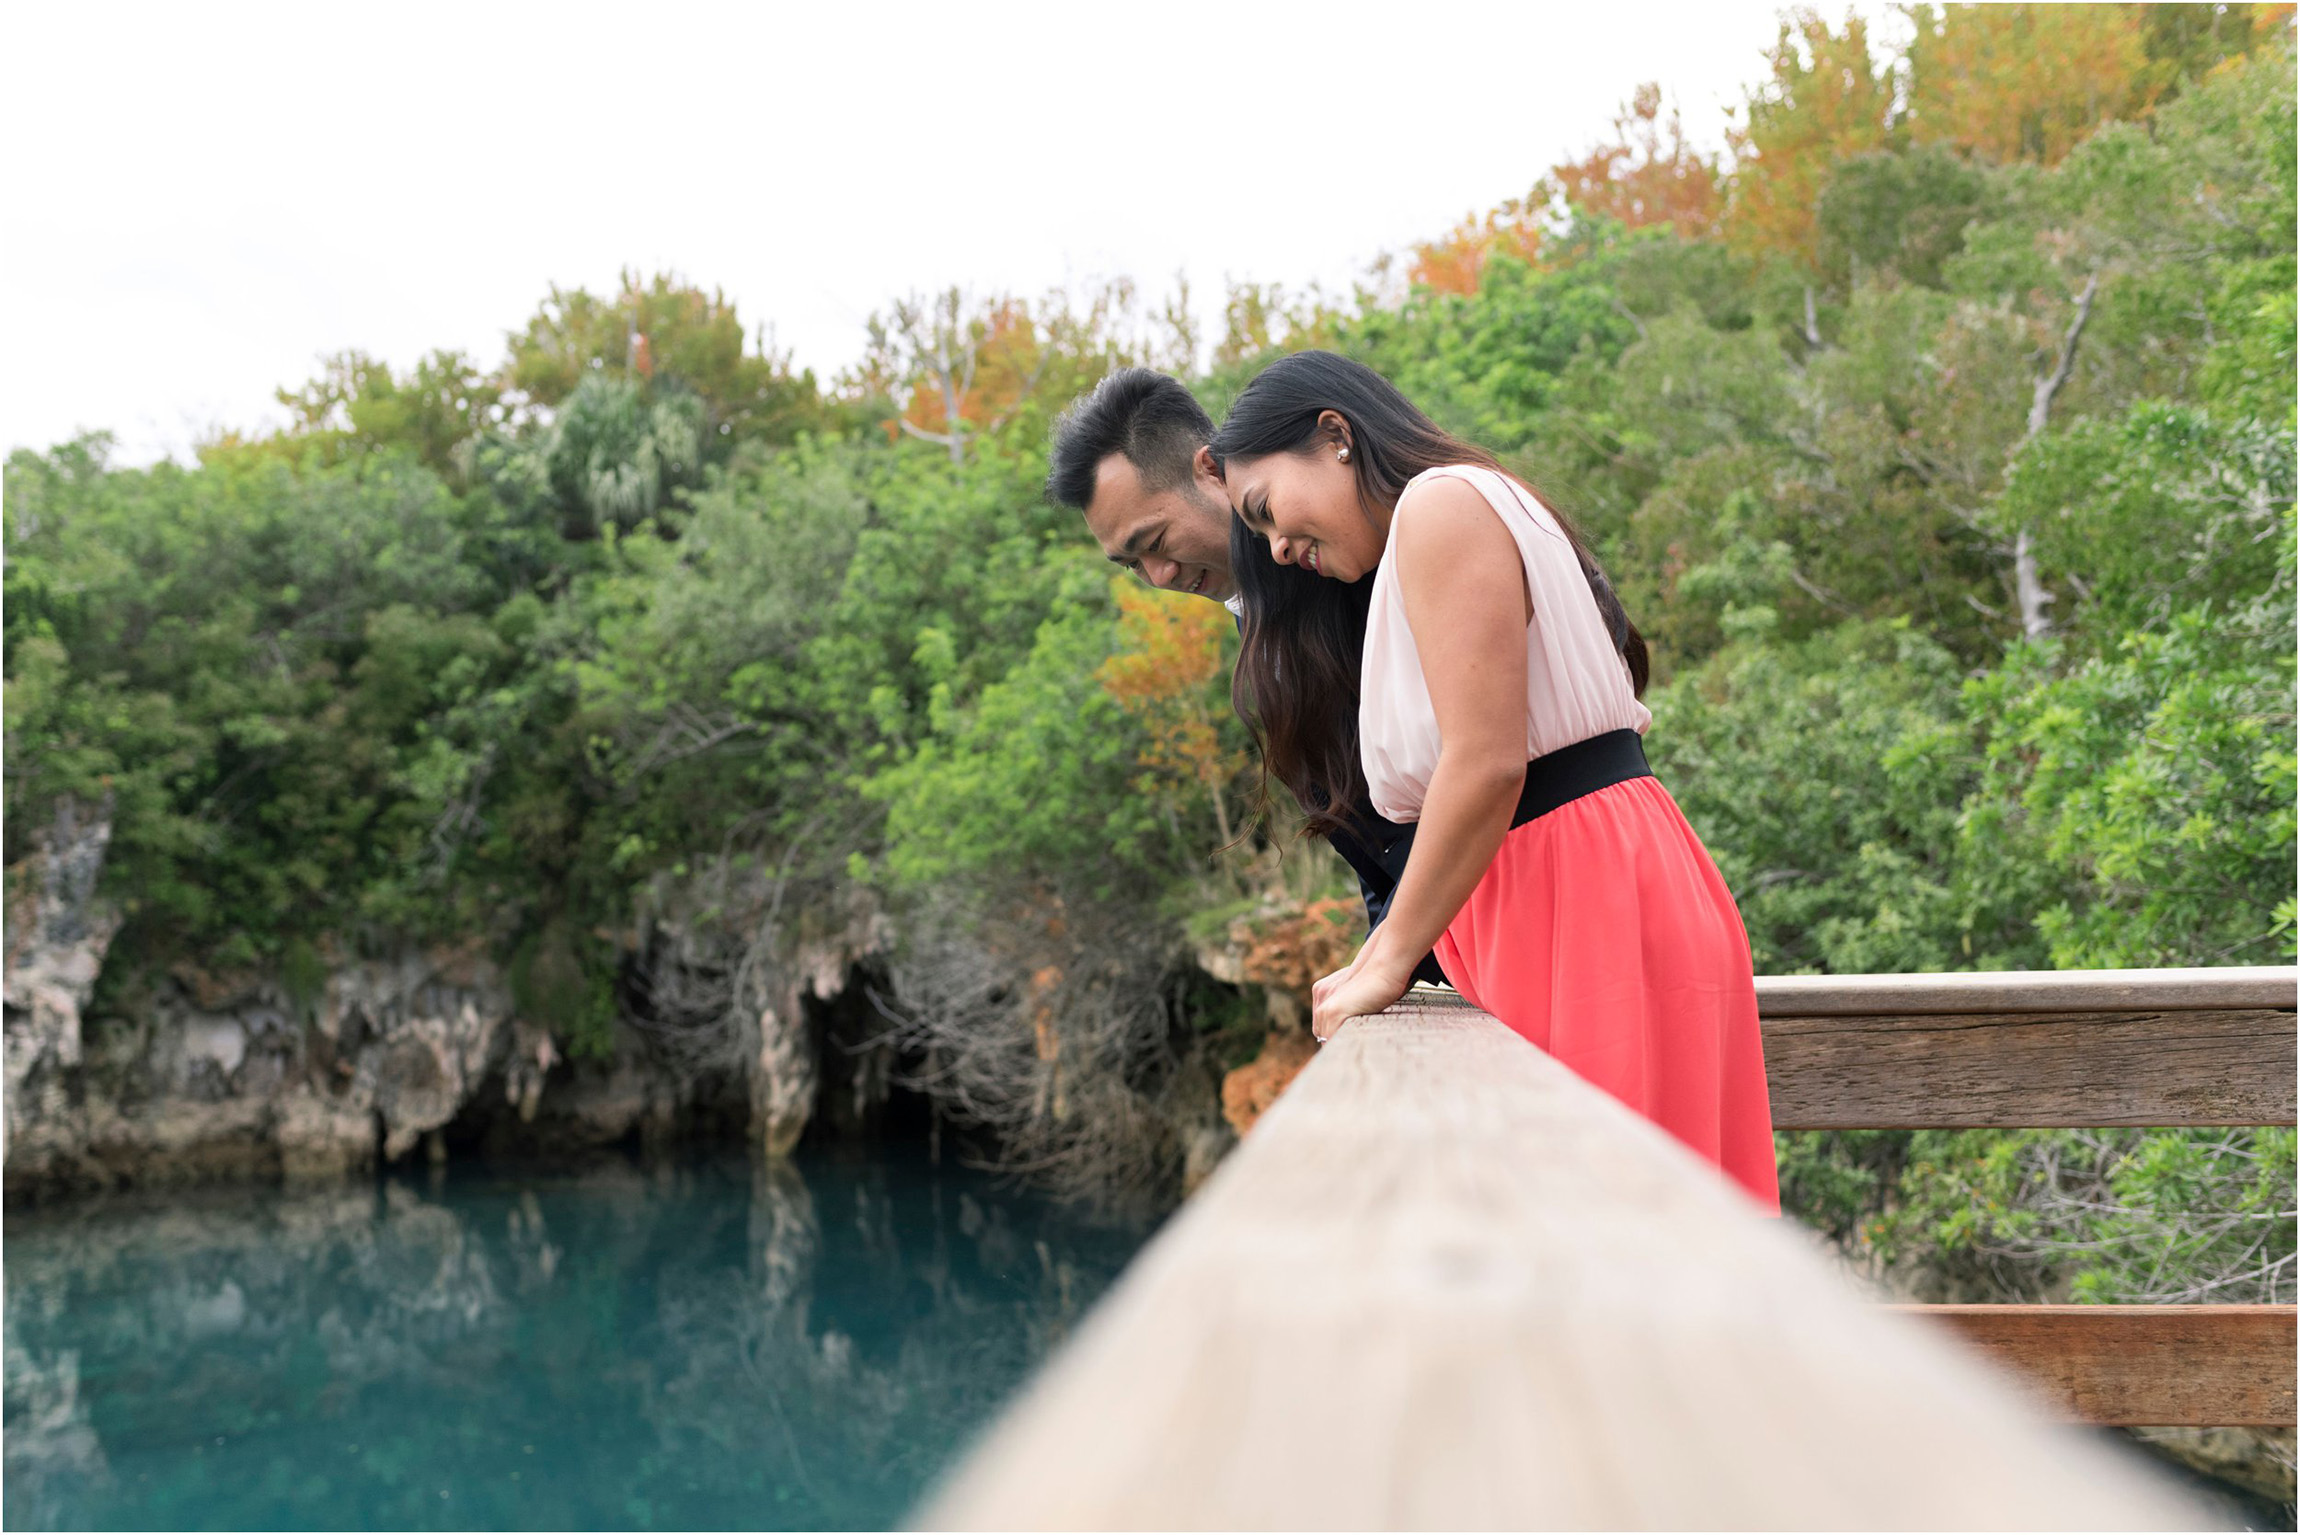 ©FianderFoto_Bermuda Engagement Photographer_Tom Moores Jungle_Owen_Chanson_027.jpg